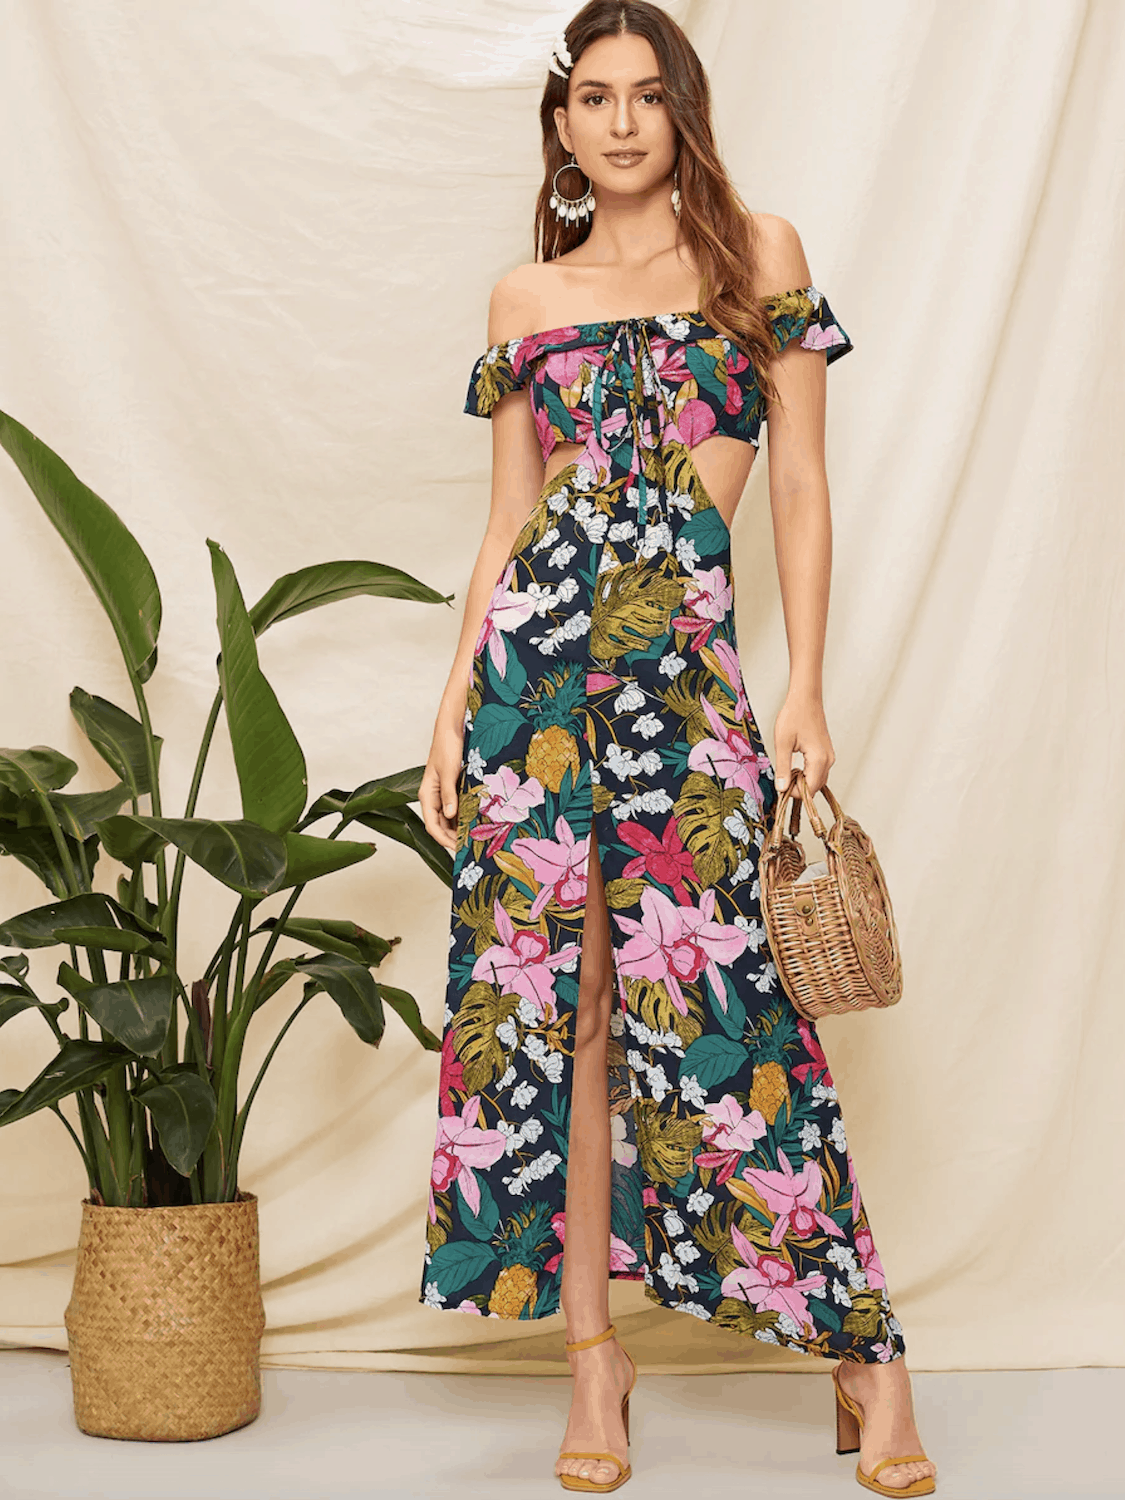 Gorgeous Summer Honeymoon Outfits Floral Print Dresses Shein Off The Shoulder Floral Print Cut Out Dress